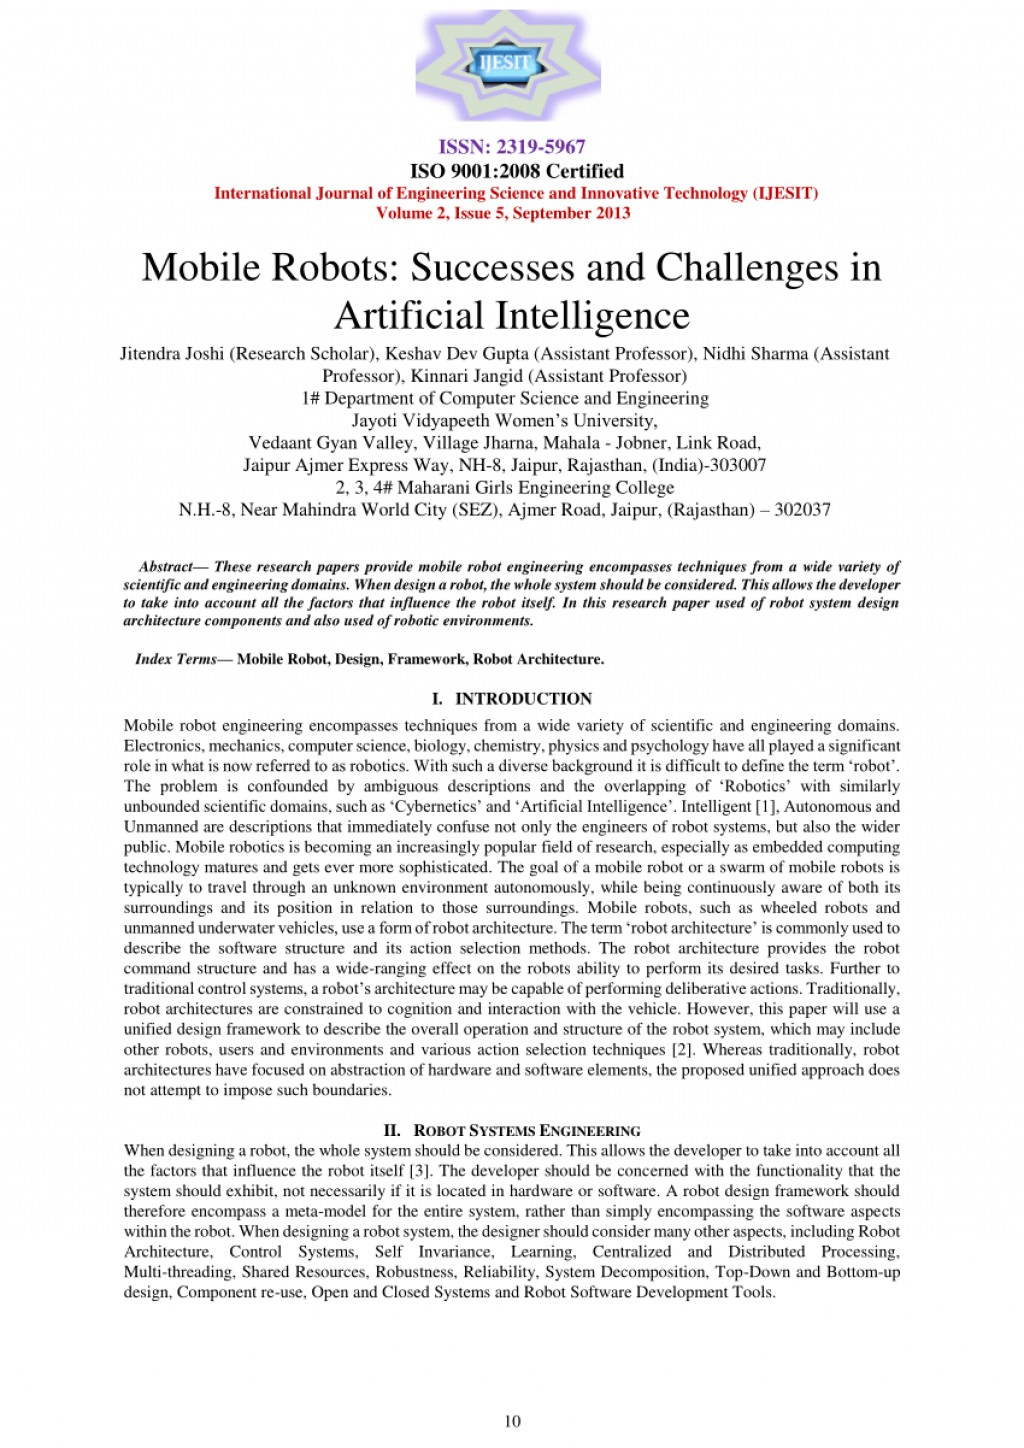 007 Research Paper Papers Artificial Intelligence Imposing On In Marketing Ieee Pdf Large